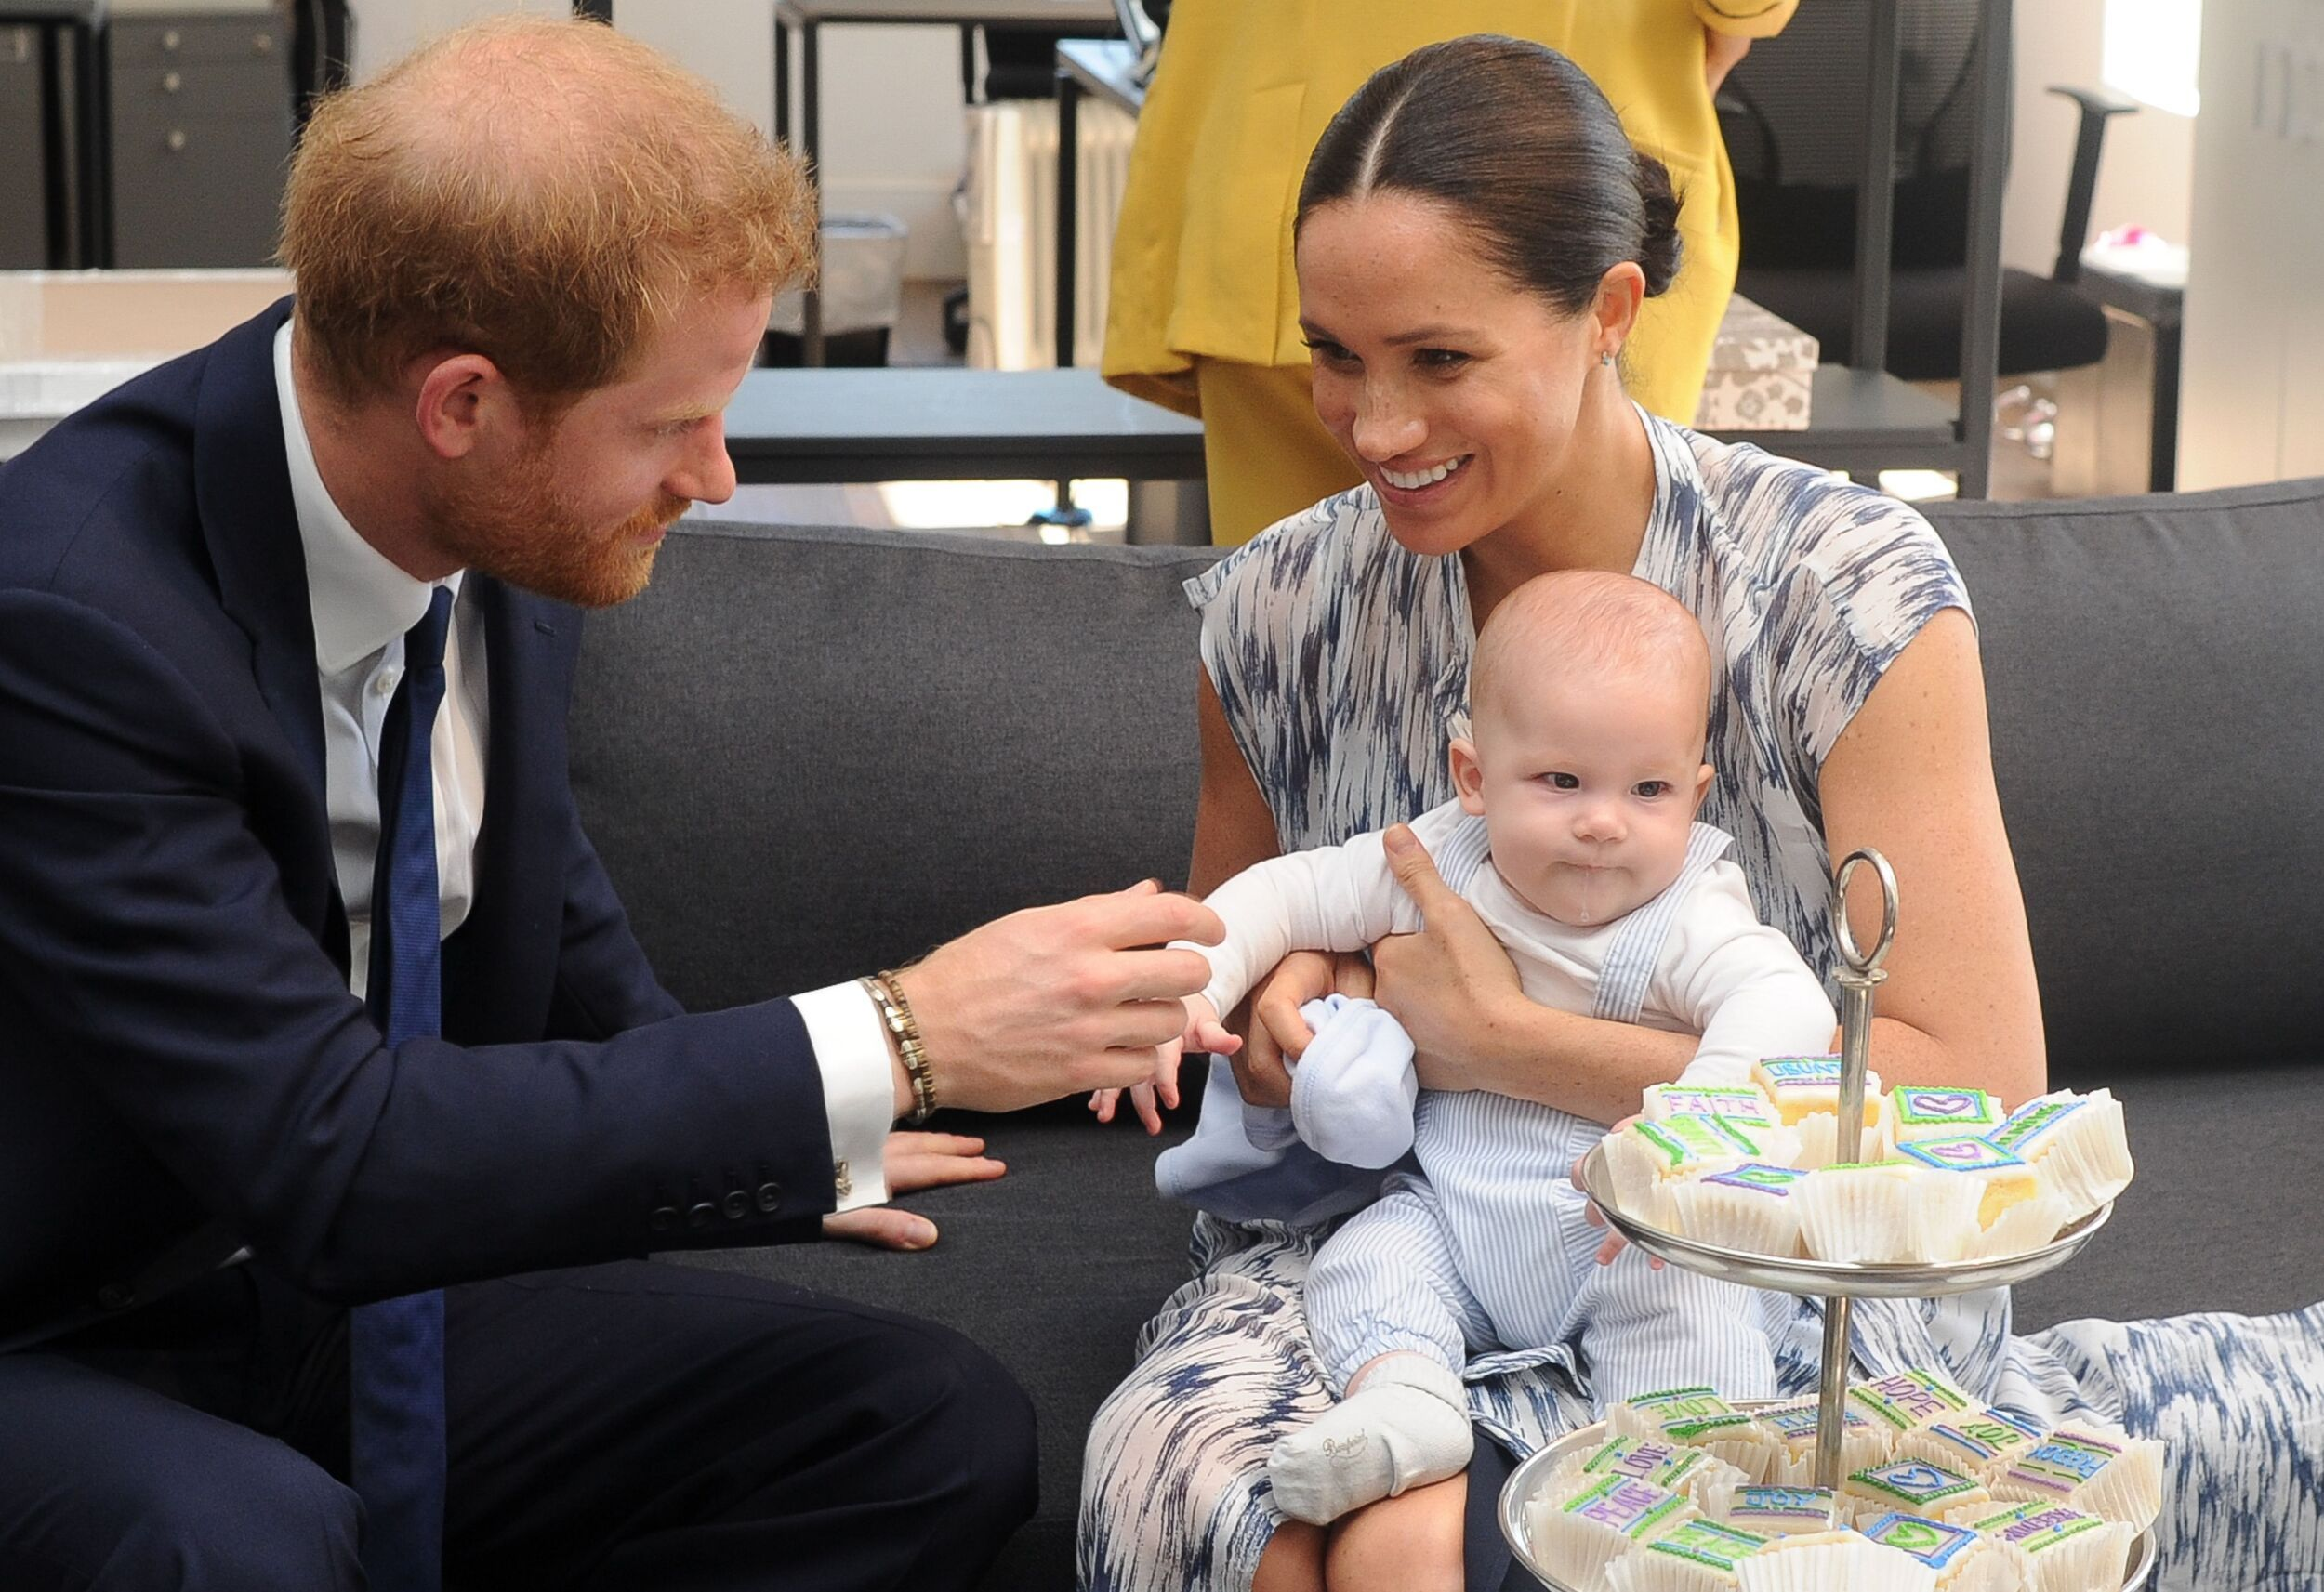 Britain S Duke And Duchess Of Sussex Prince Harry And His Wife Meghan Hold Their Baby S Prince Harry And Meghan Meghan Markle Prince Harry Markle Prince Harry